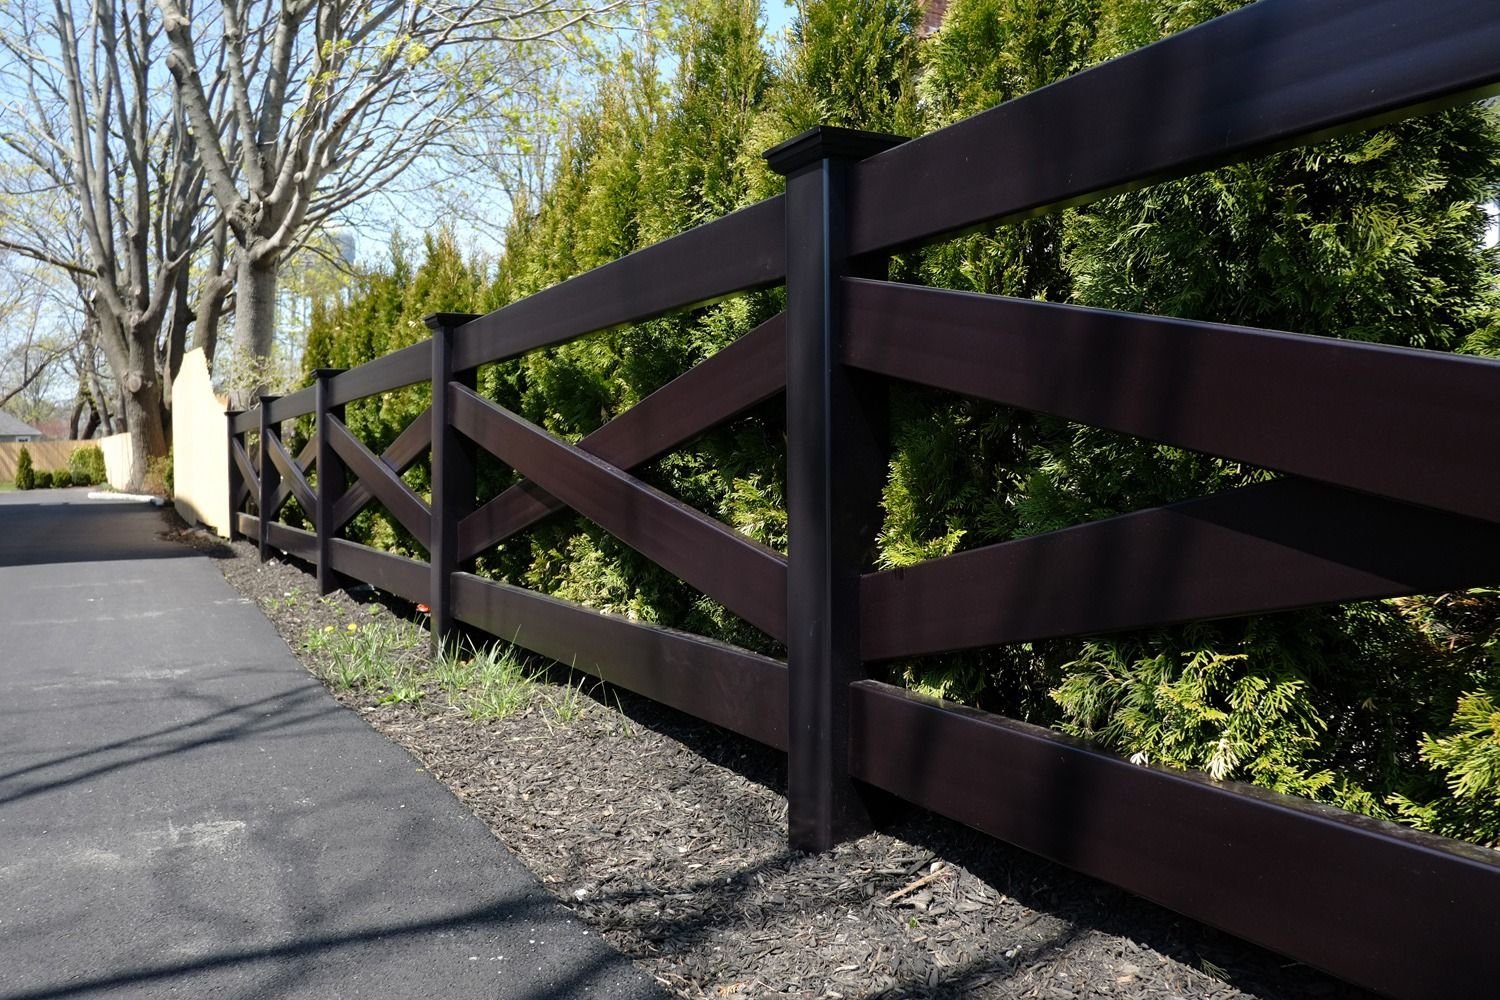 Images of illusions pvc vinyl wood grain and color fence fence